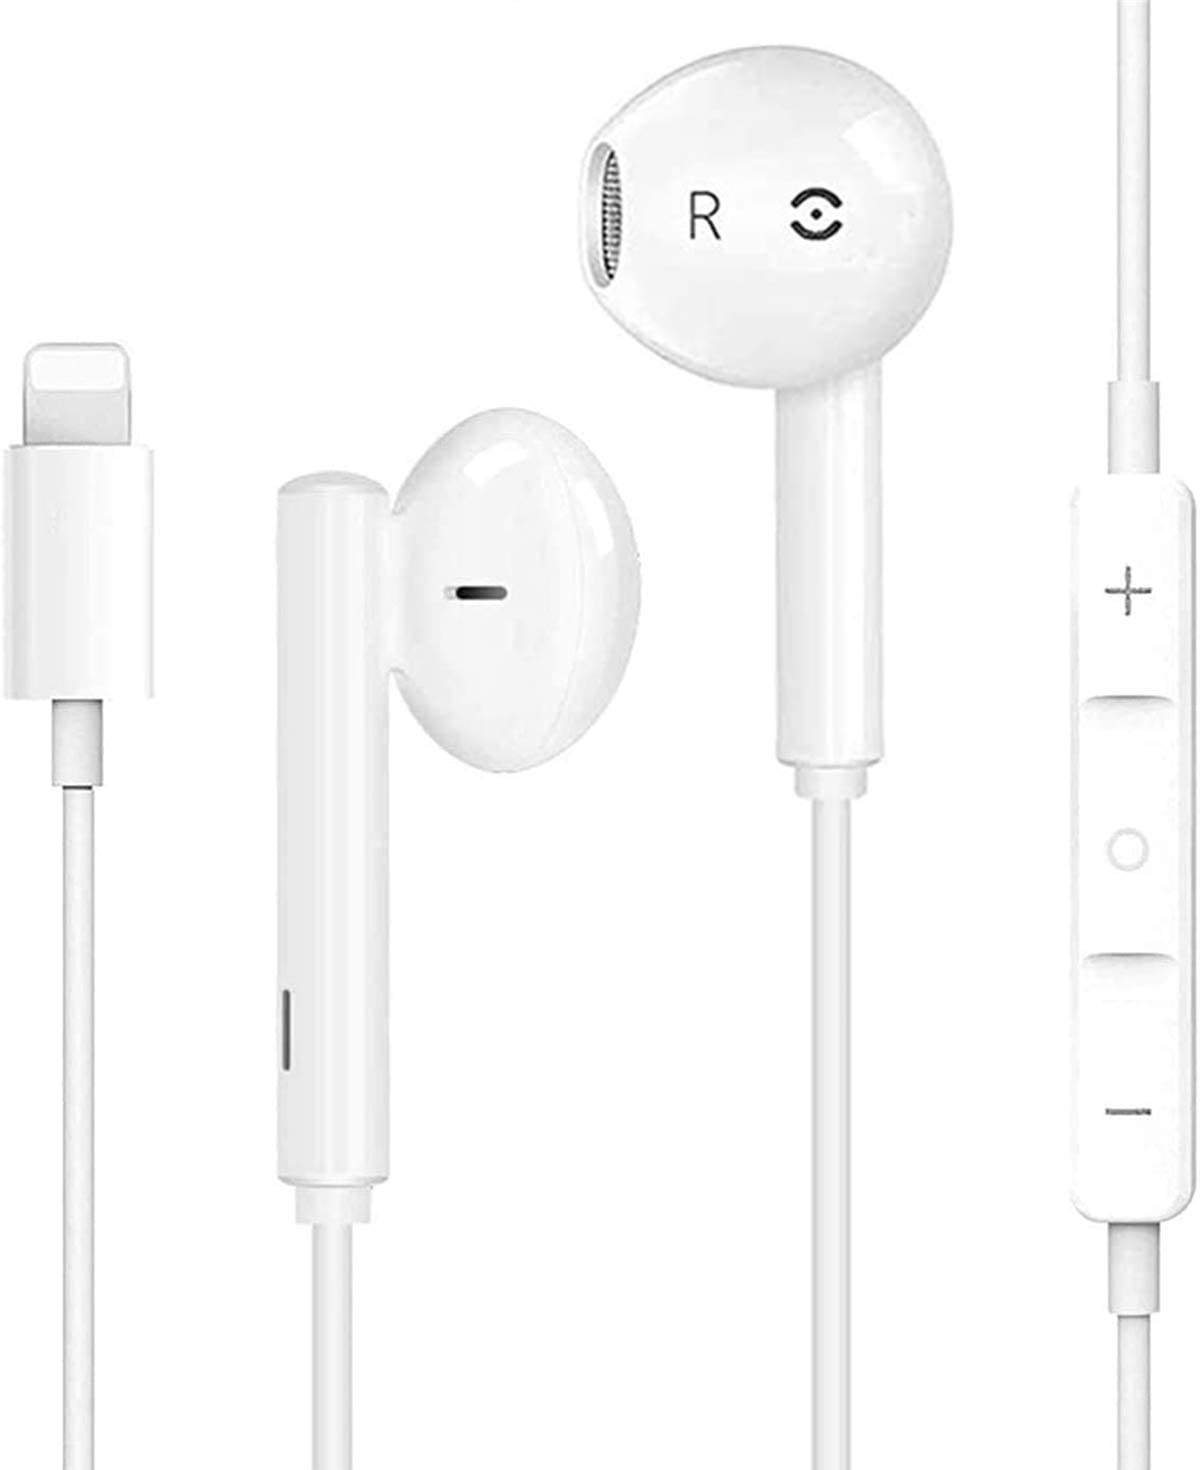 Headphones Earbuds Wired Headphones Noise Isolating Earphones Built-in Microphone and Volume Control and Noise Cancellation Compatible with iPhone/iPad/iPod/Remote Controls